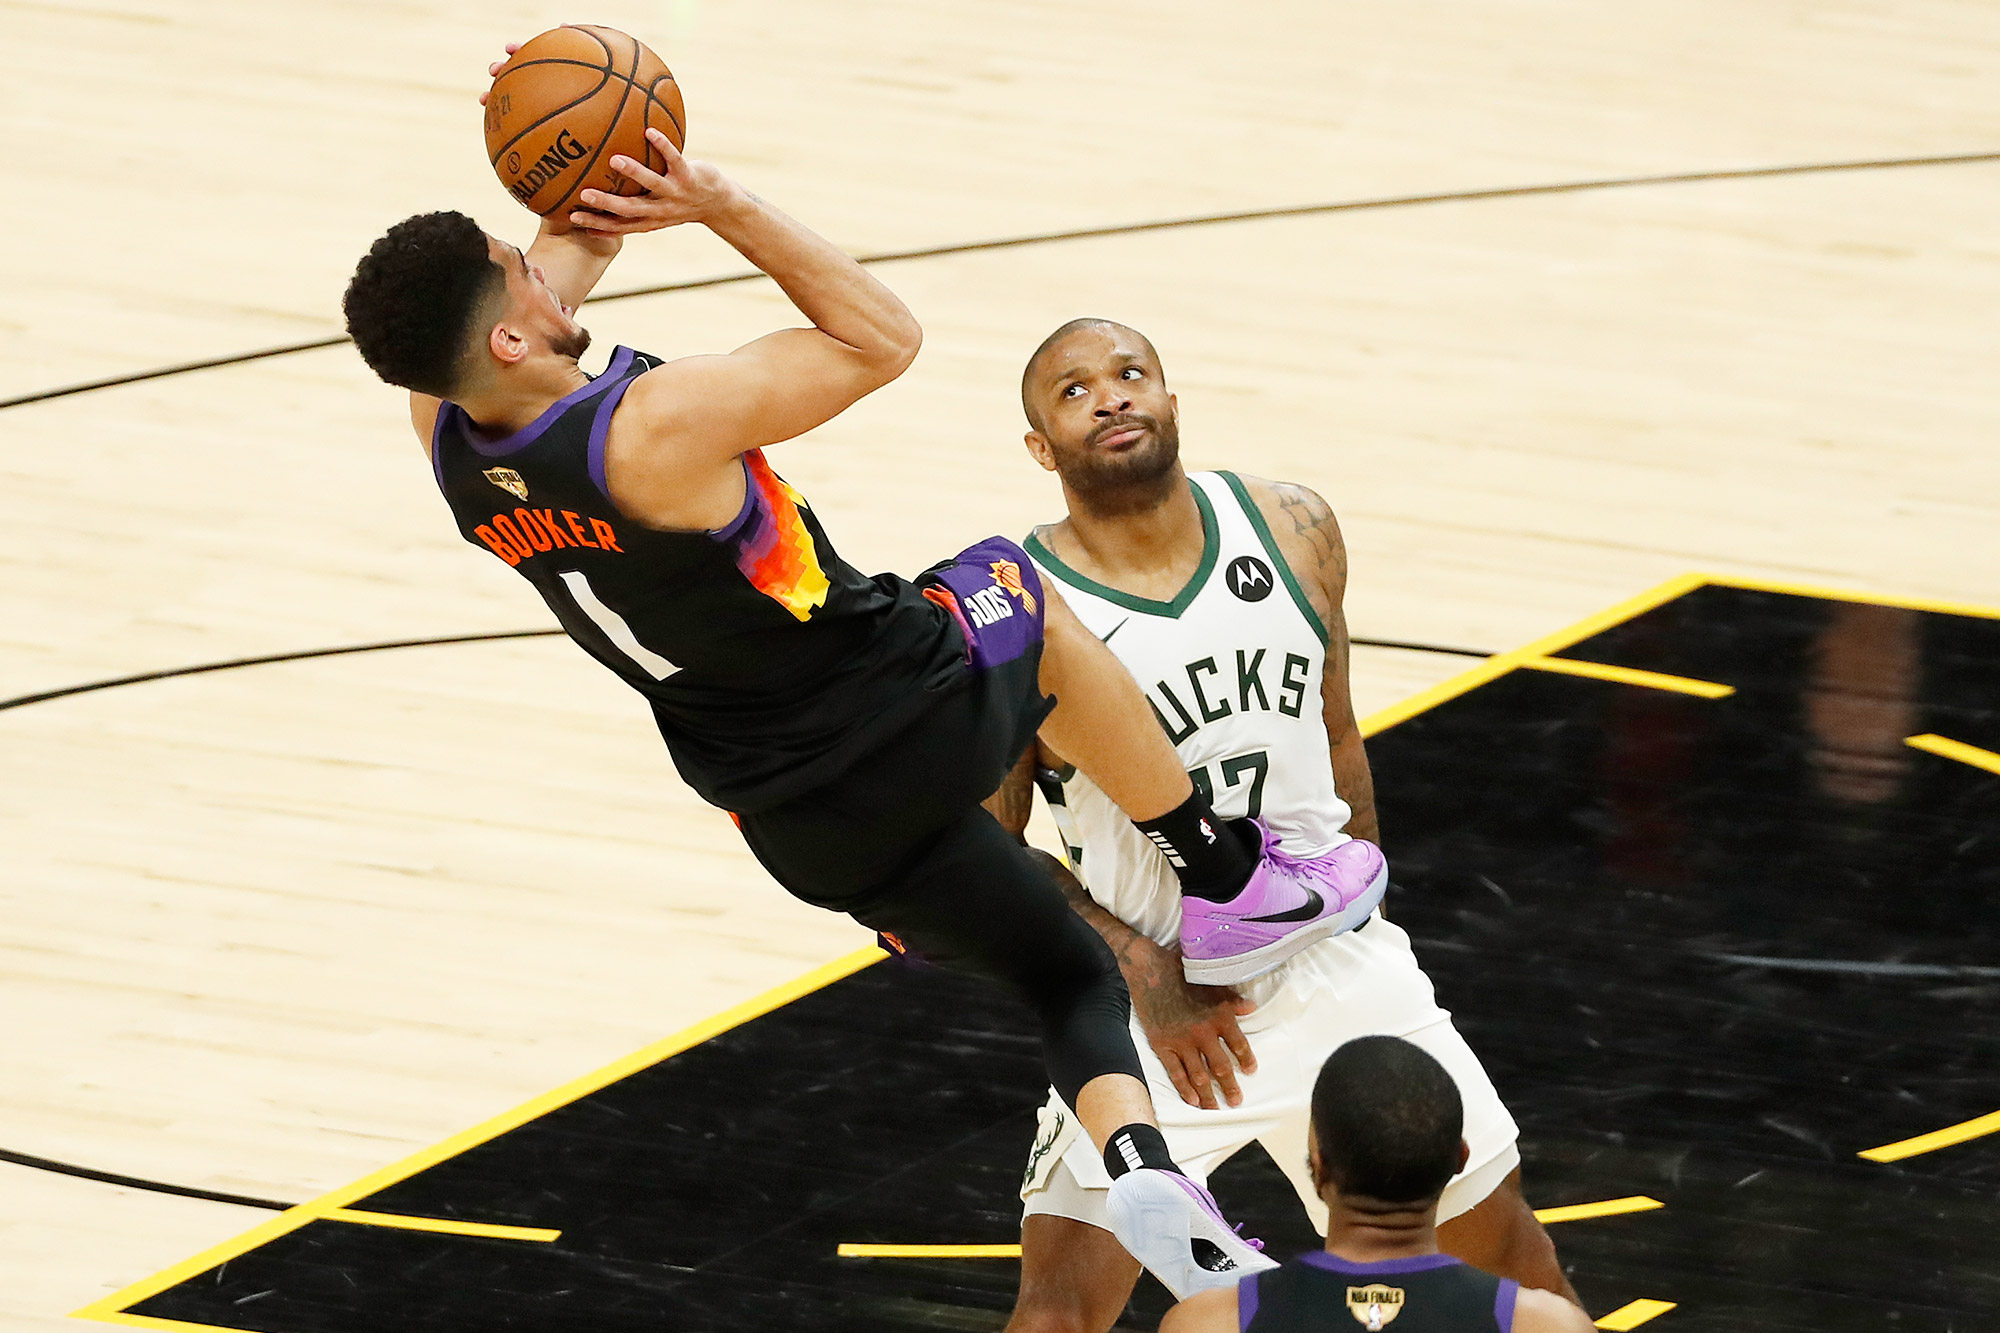 Devin Booker #1 of the Phoenix Suns is fouled by P.J. Tucker #17 of the Milwaukee Bucks during the first half in Game One of the NBA Finals at Phoenix Suns Arena on July 06, 2021 in Phoenix, Arizona